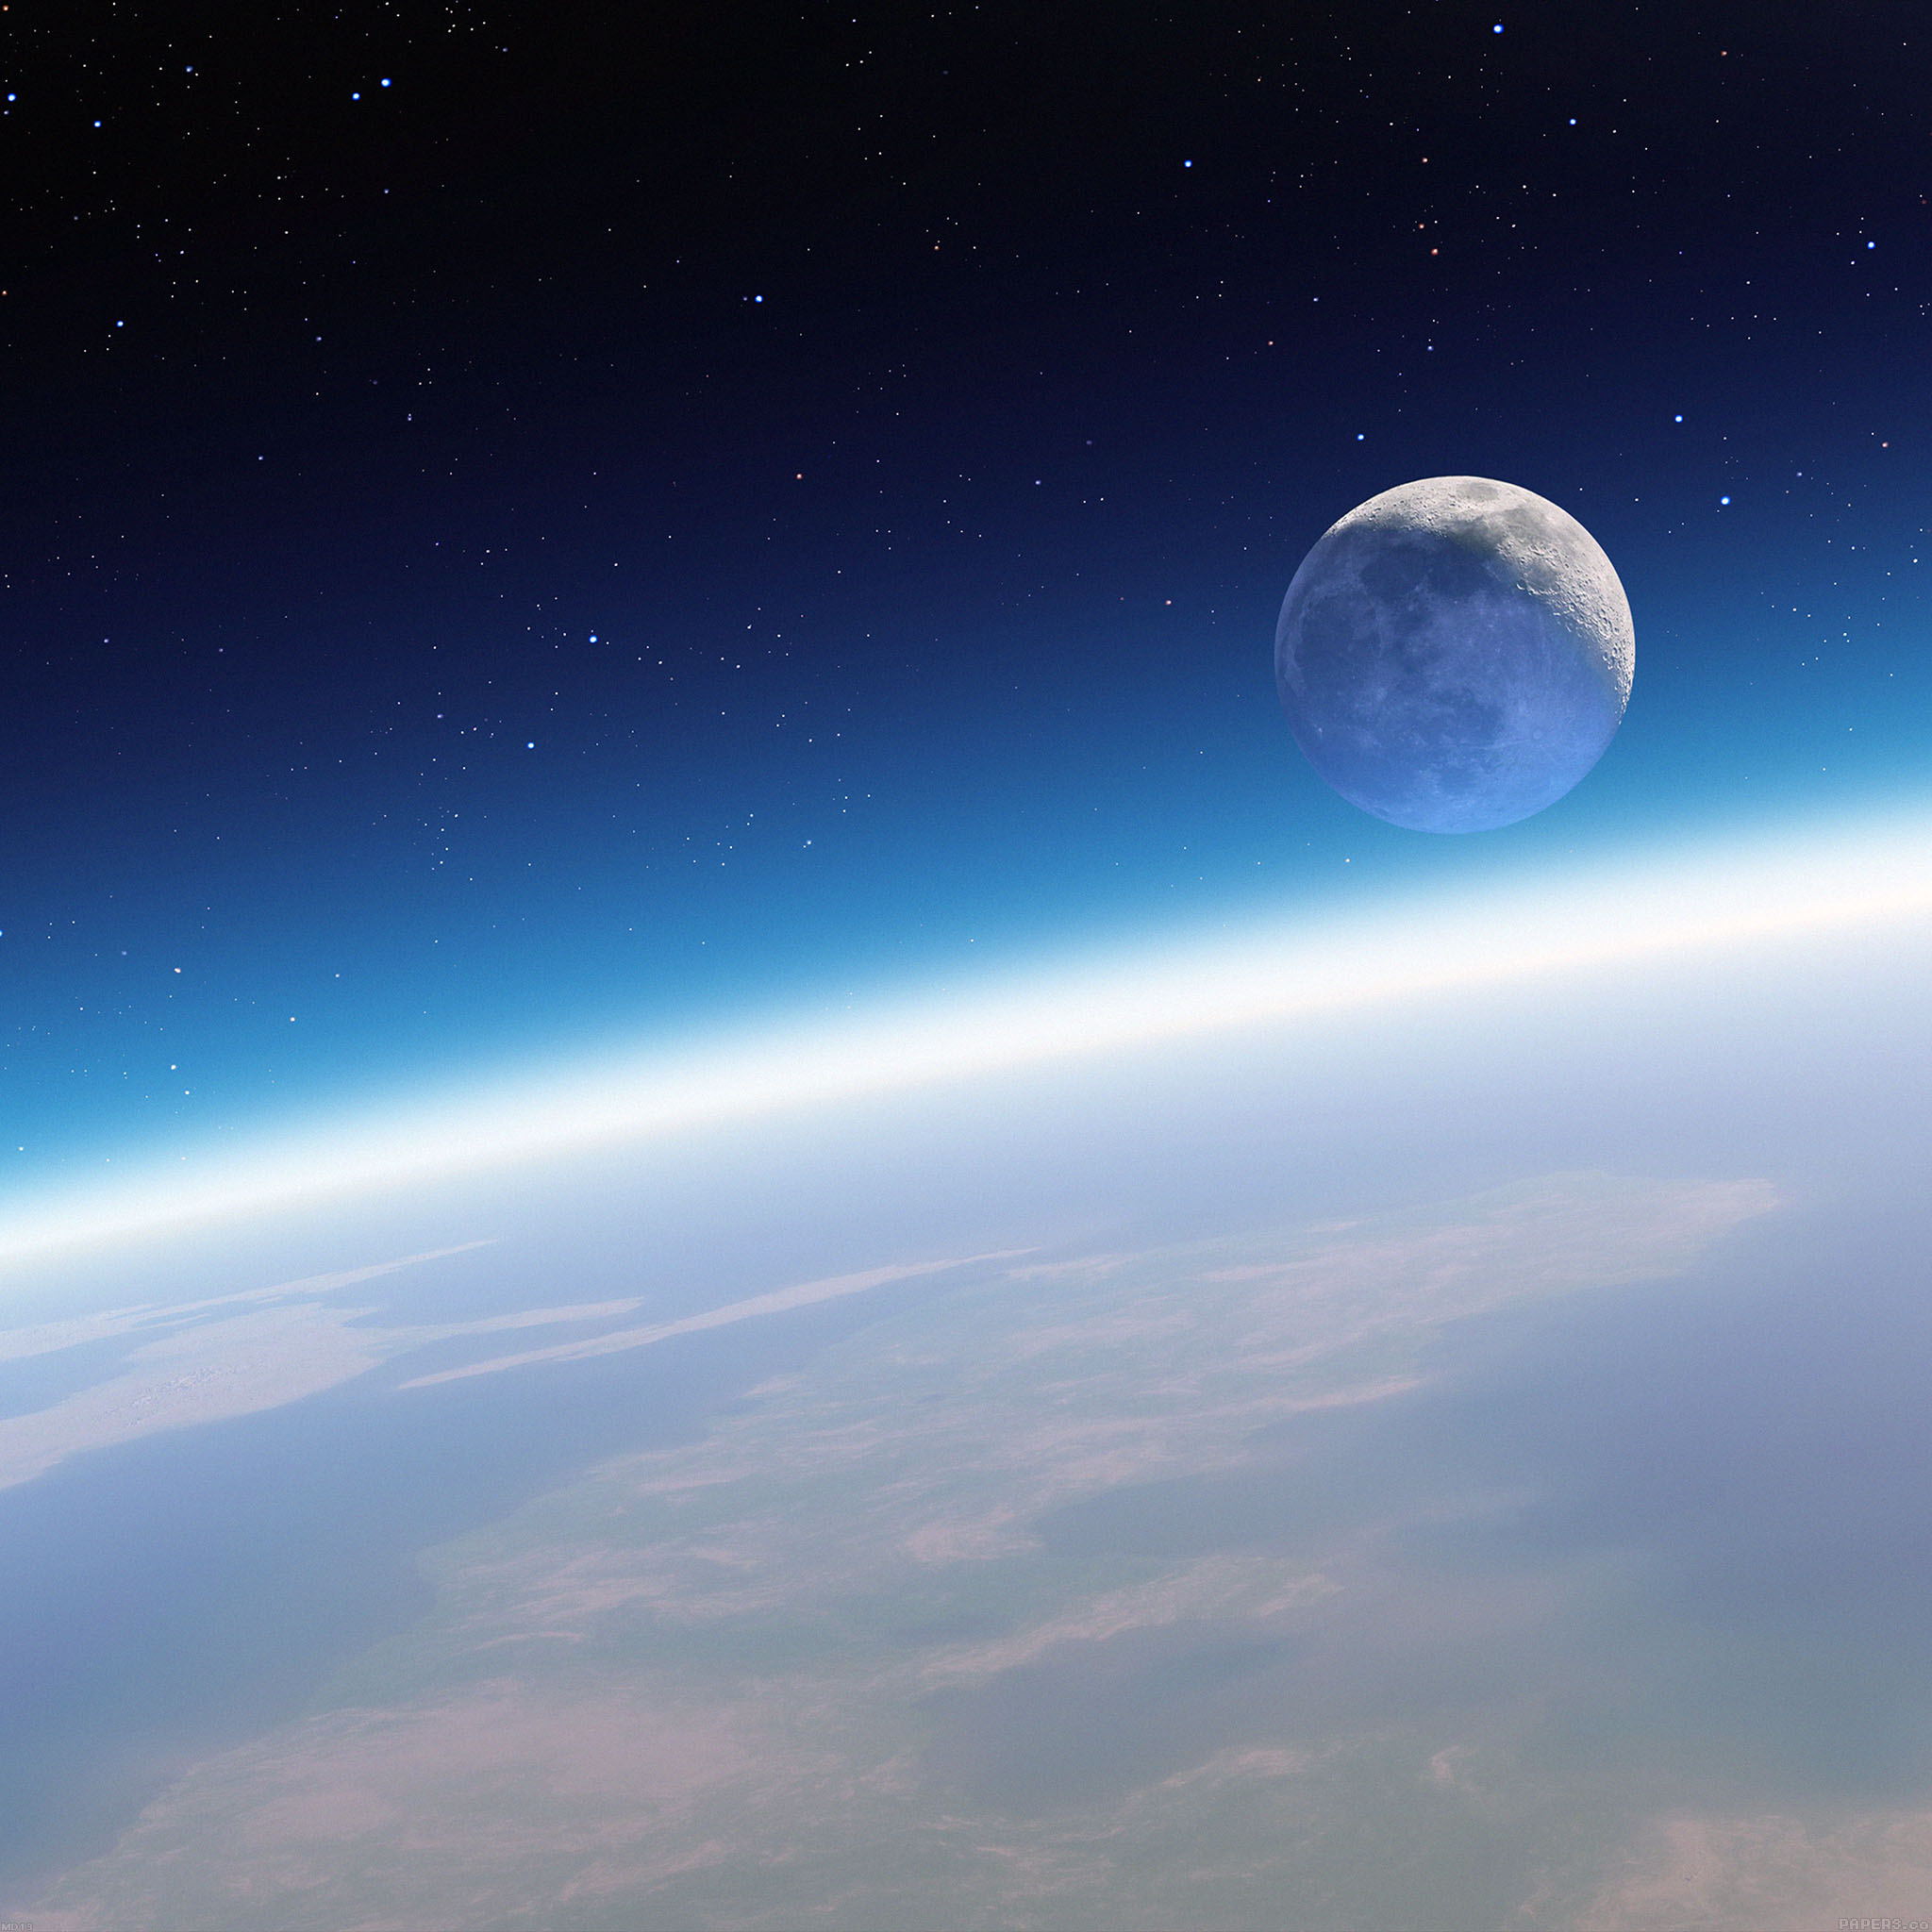 Samsung Galaxy Wallpaper Hd Md13 Wallpaper Earth Horizon In Space Papers Co